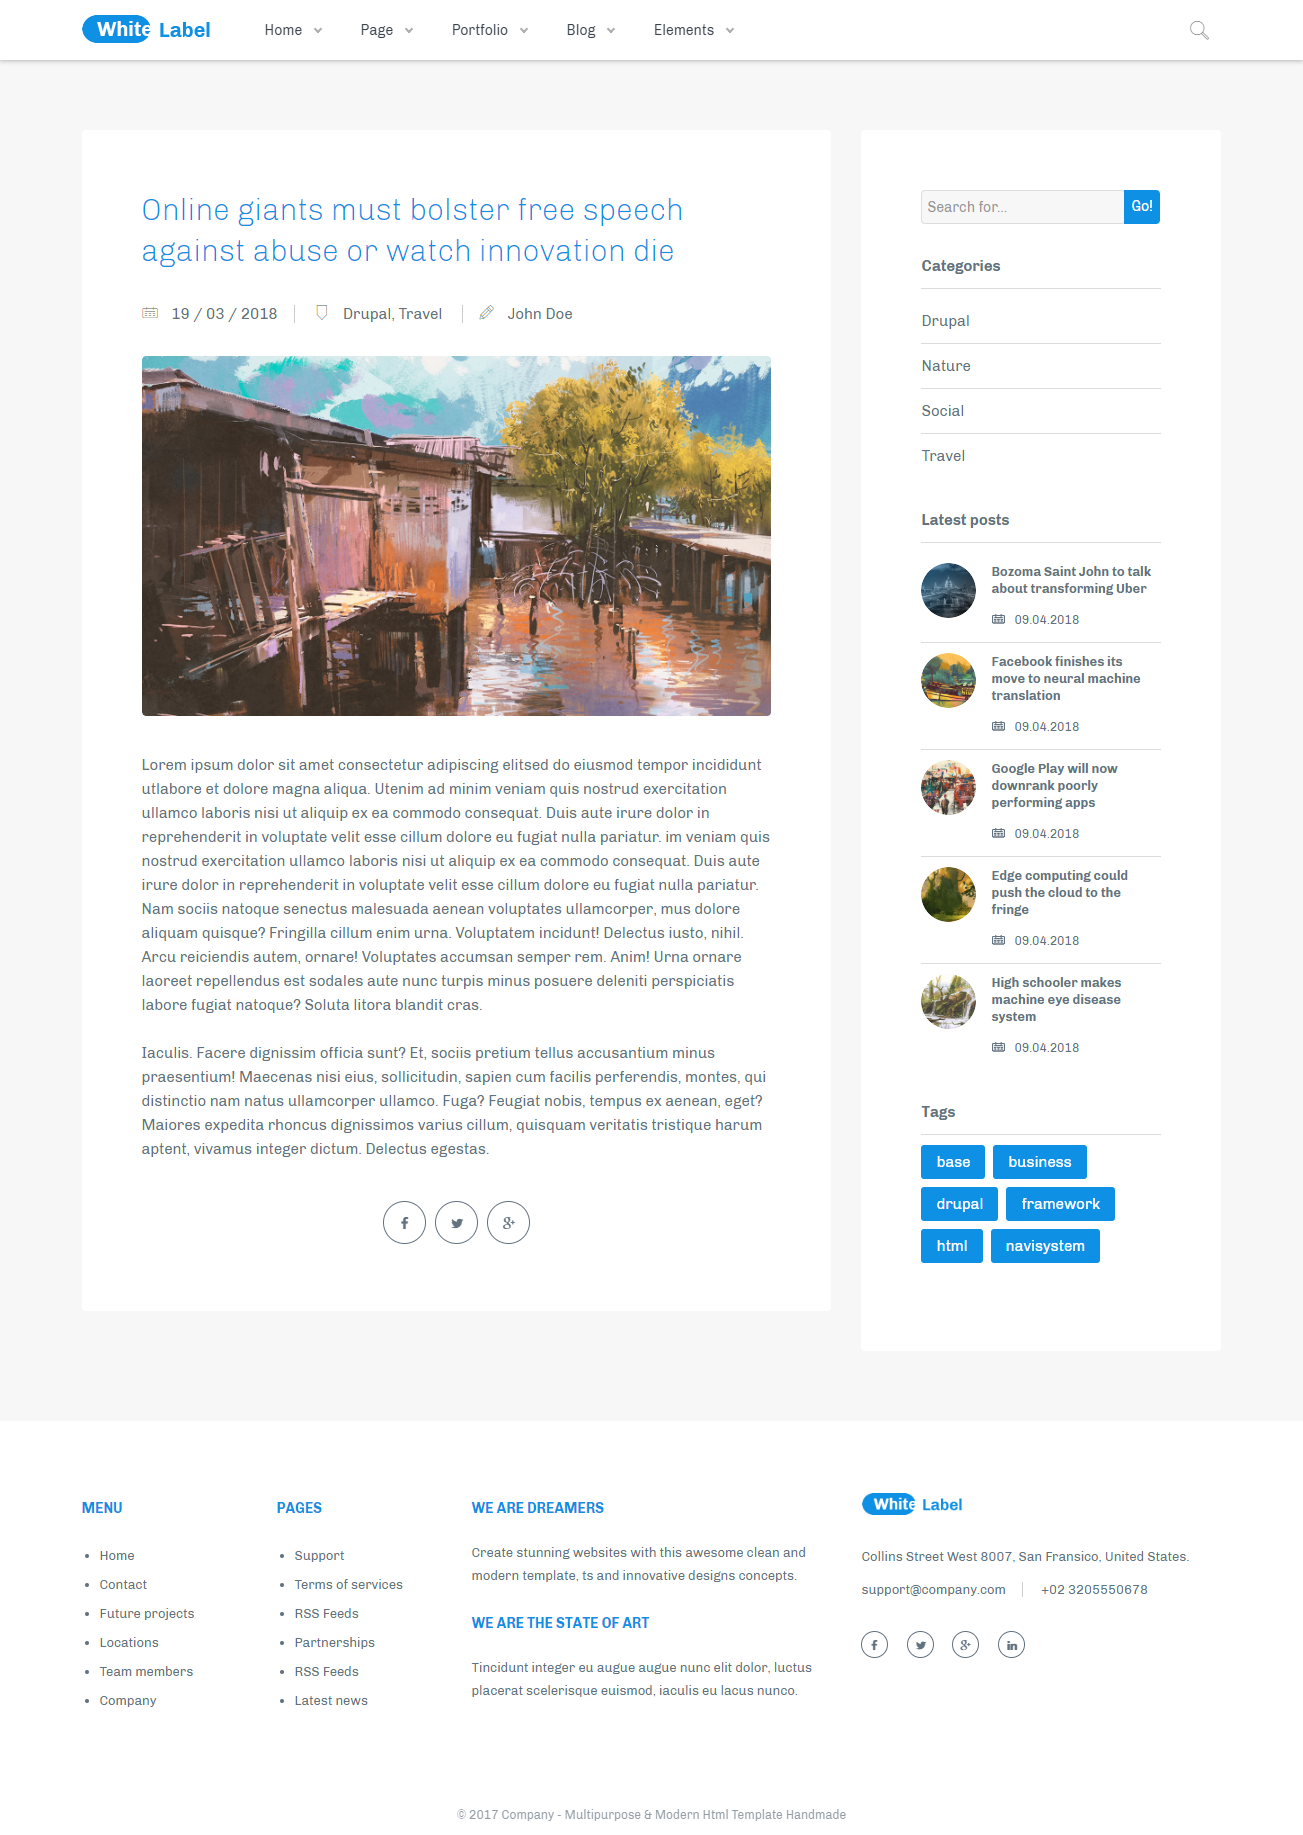 White Label - Clean Drupal 8 7 theme for Modern Web Businesses